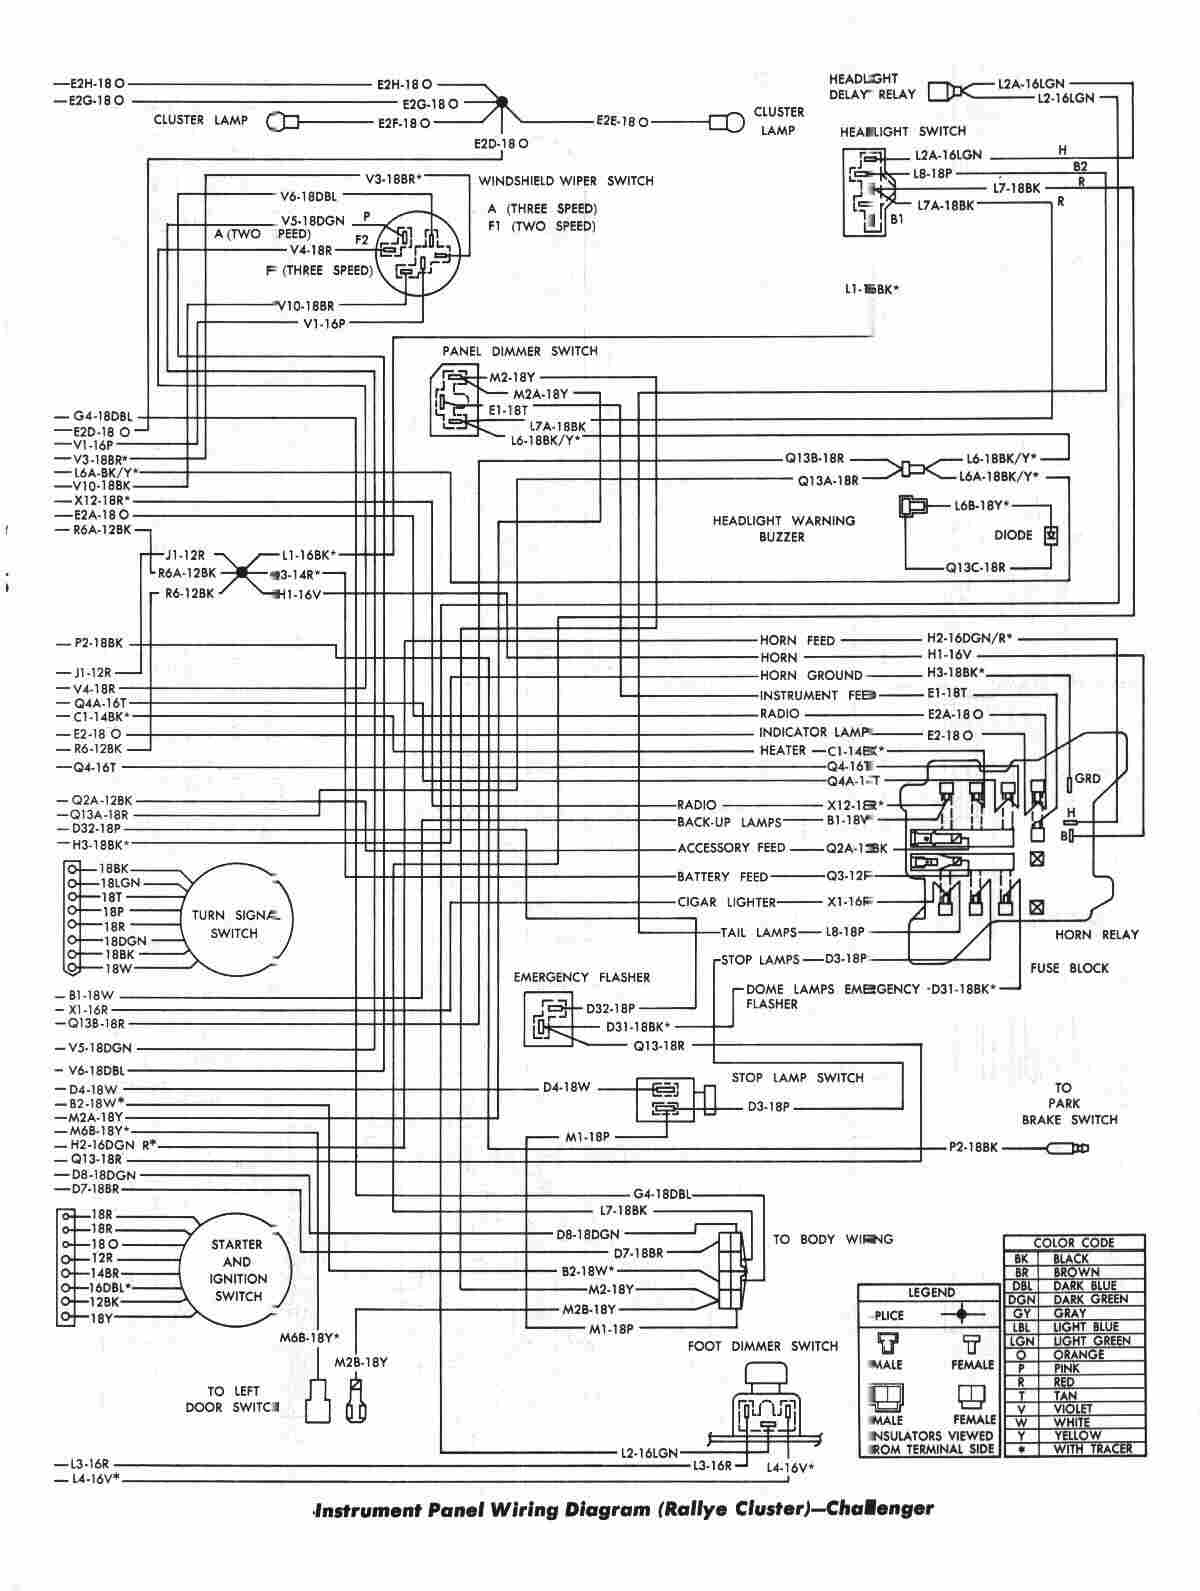 2009 Dodge Journey Fuse Box Diagram Dodge Wiring Diagram Images